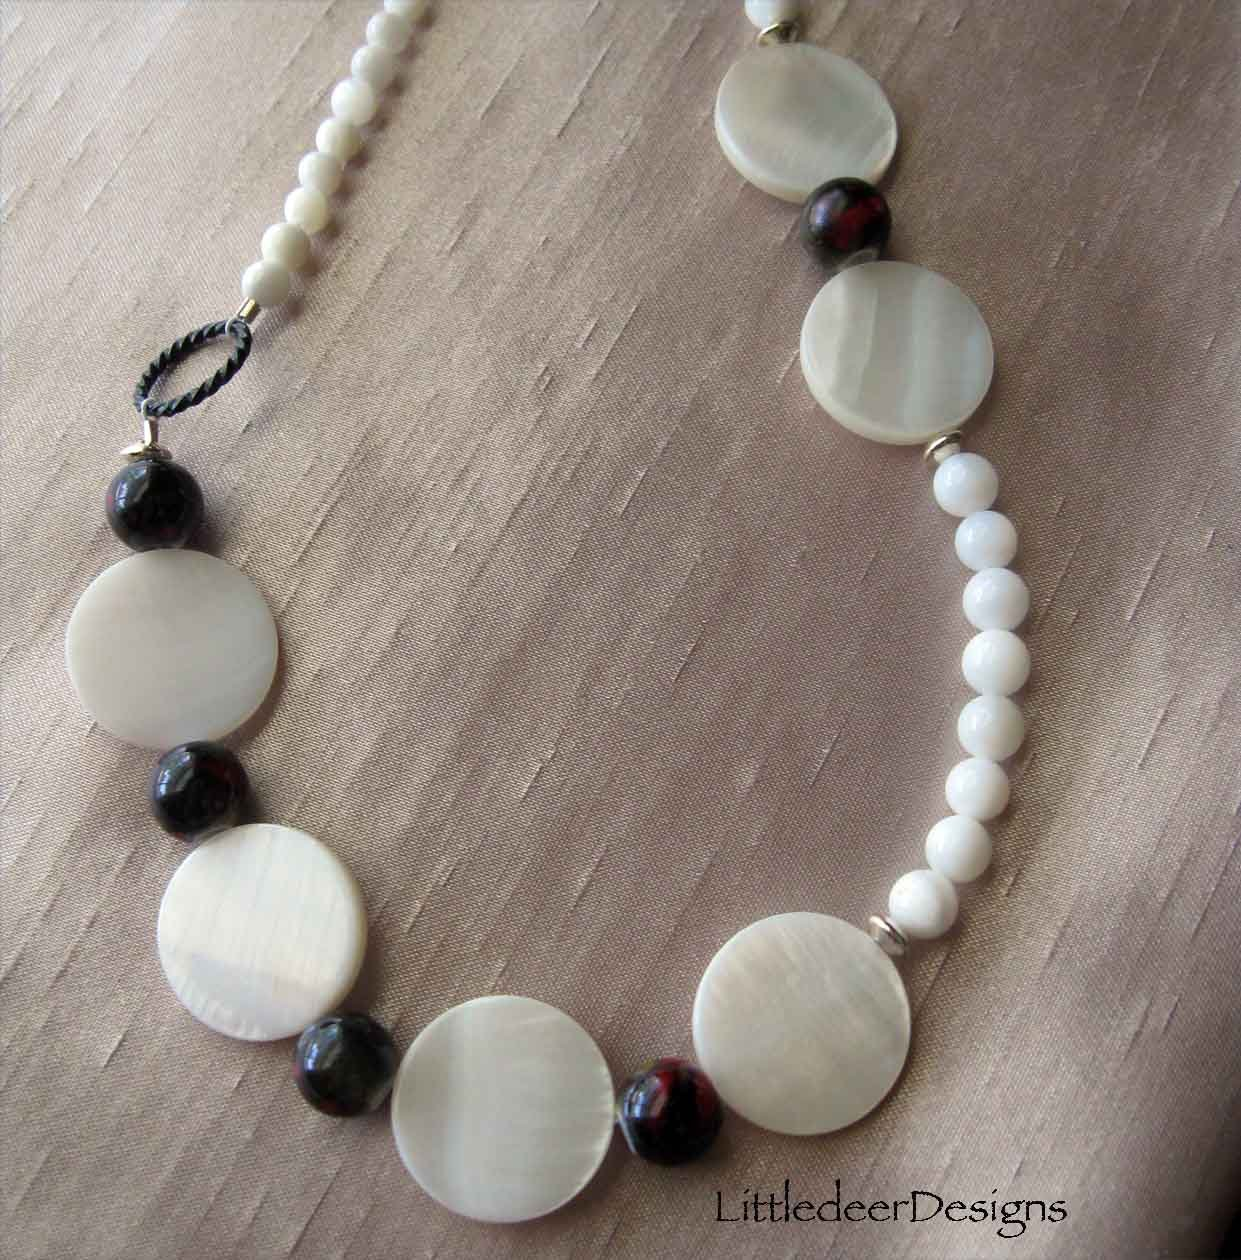 Necklace:  Riverstone with vintage button clasp